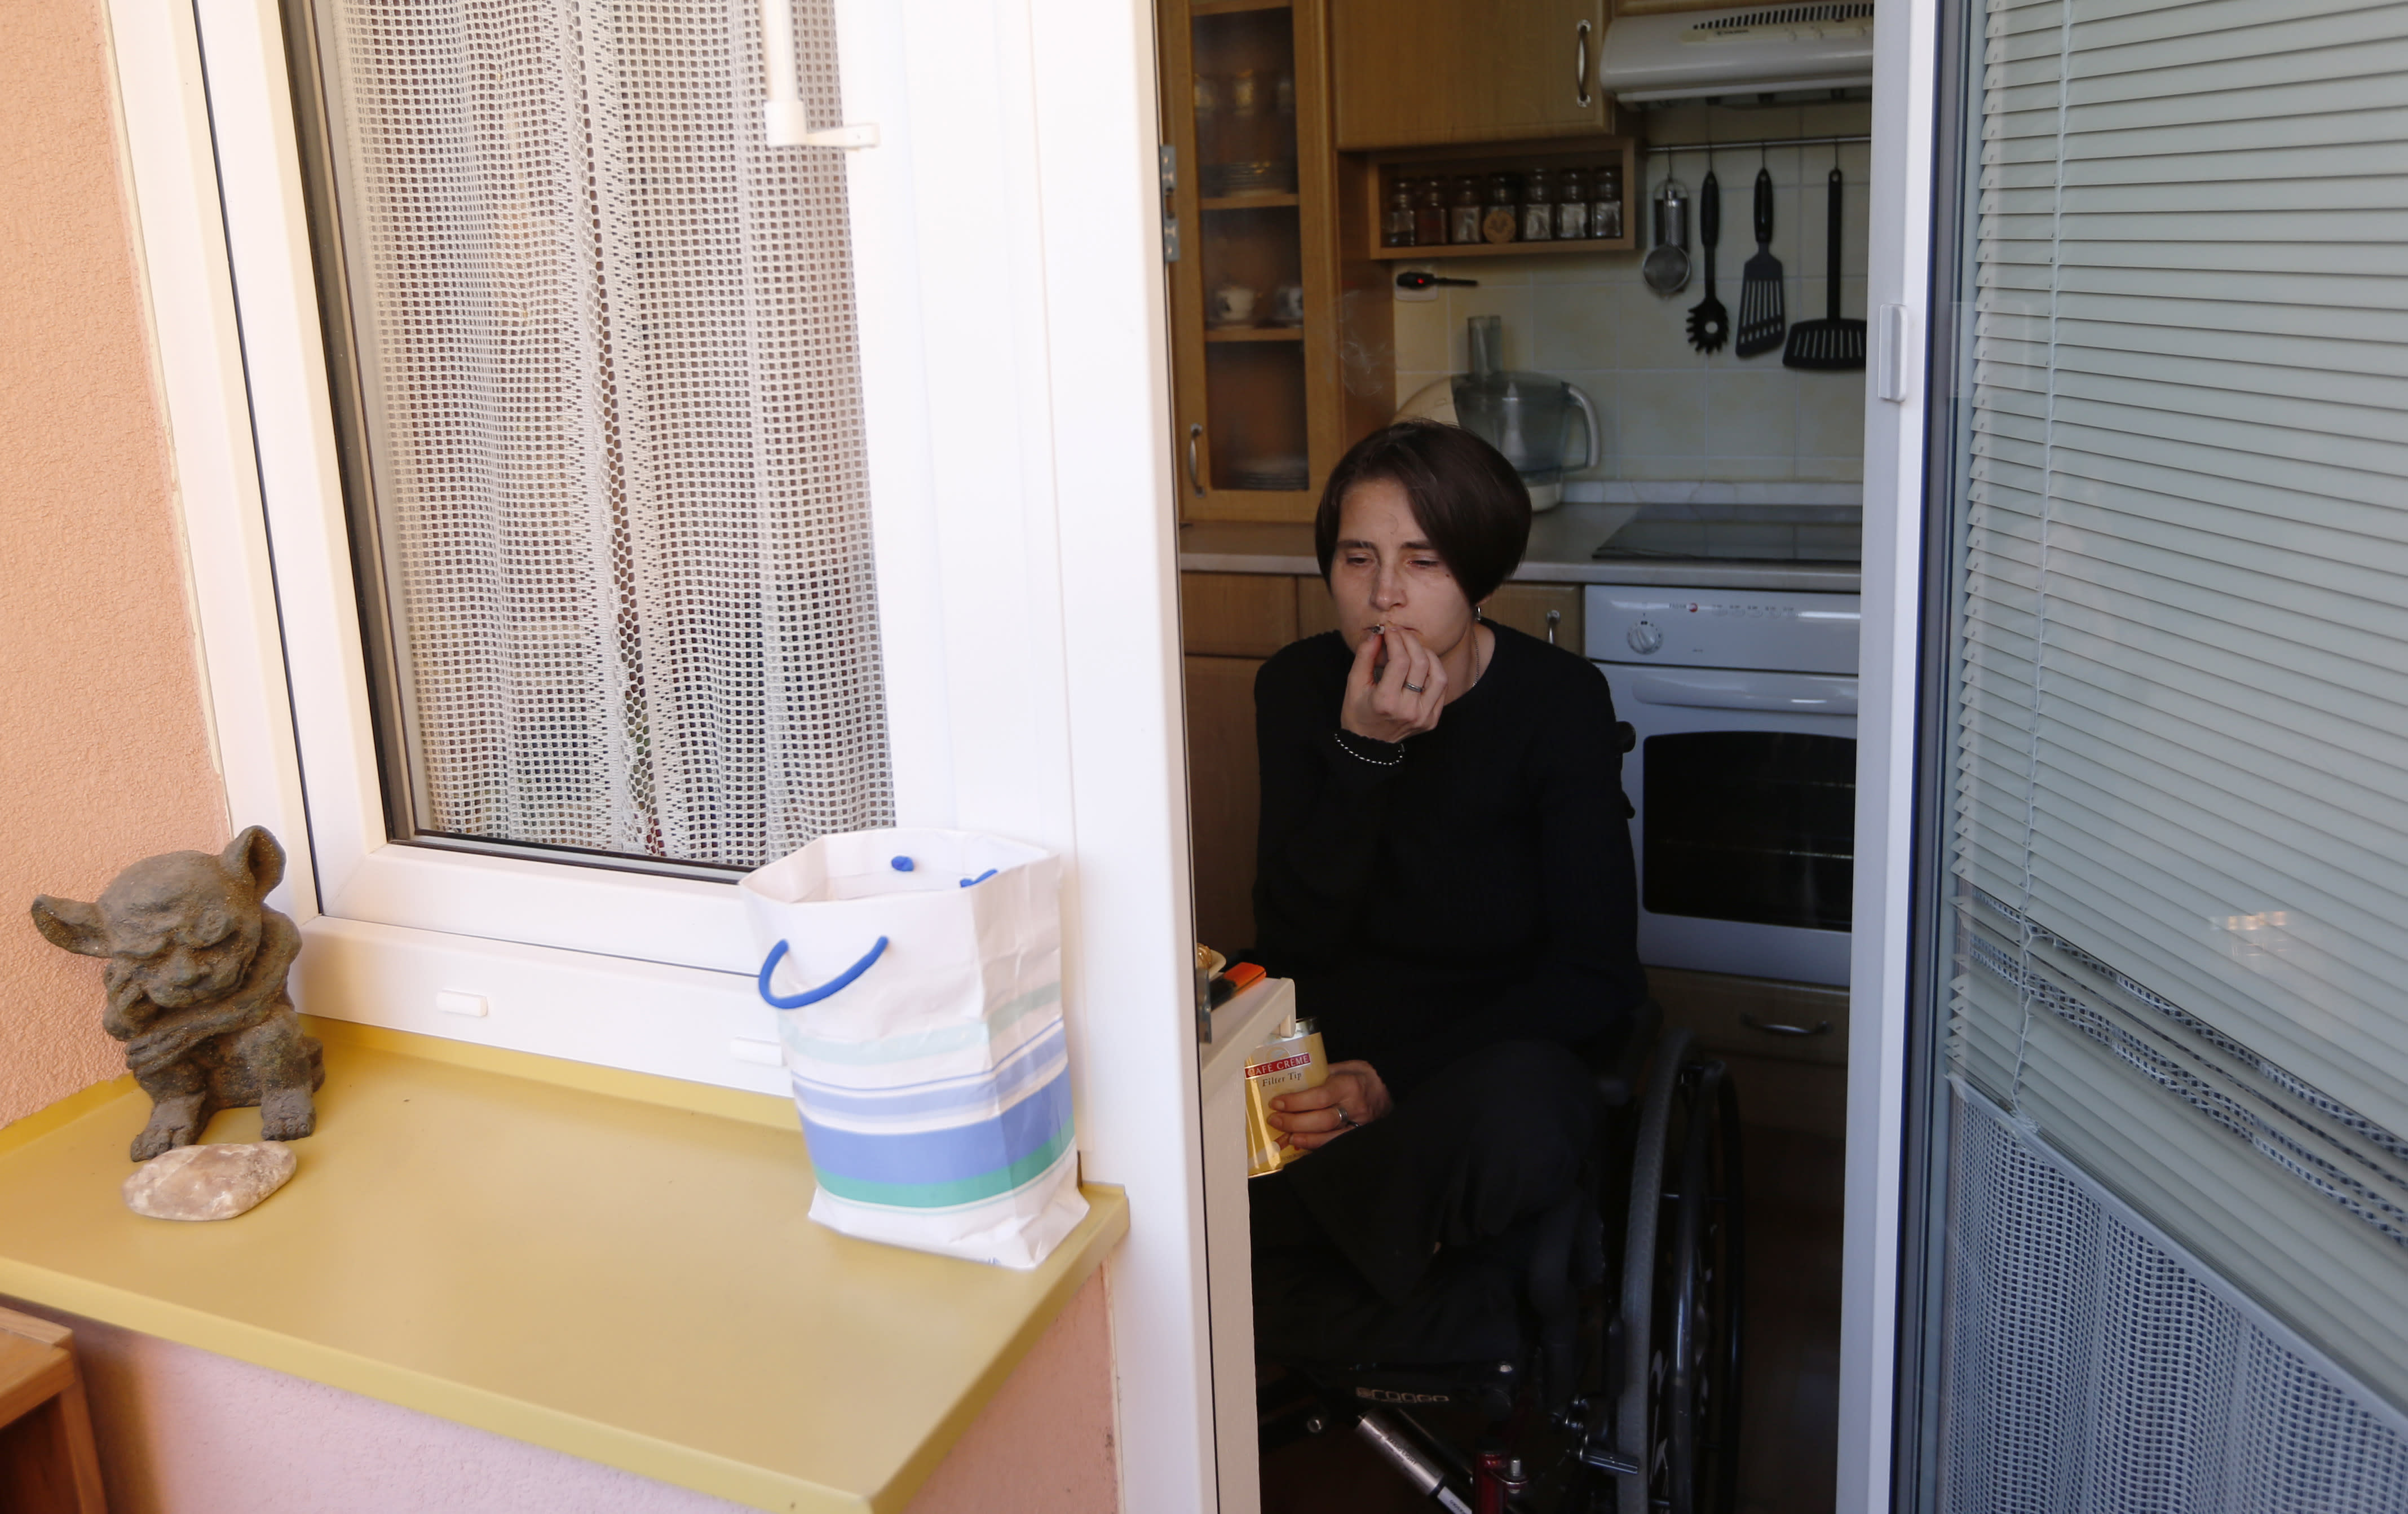 In this Monday, Oct. 14, 2013 photo, Martina Kafkova, a patient diagnosed with multiple sclerosis, smokes a joint at her home in Tyn nad Vltavou, Czech Republic. Confined to a wheelchair, the former non-smoker needs five short joints a day to get relief from severe stiffness, painful spasms and breathing troubles because other available medicine is not effective enough to help. Czech Republic has approved legislation for use of medical marijuana but it is still impossible to obtain it legally. (AP Photo/Petr David Josek)